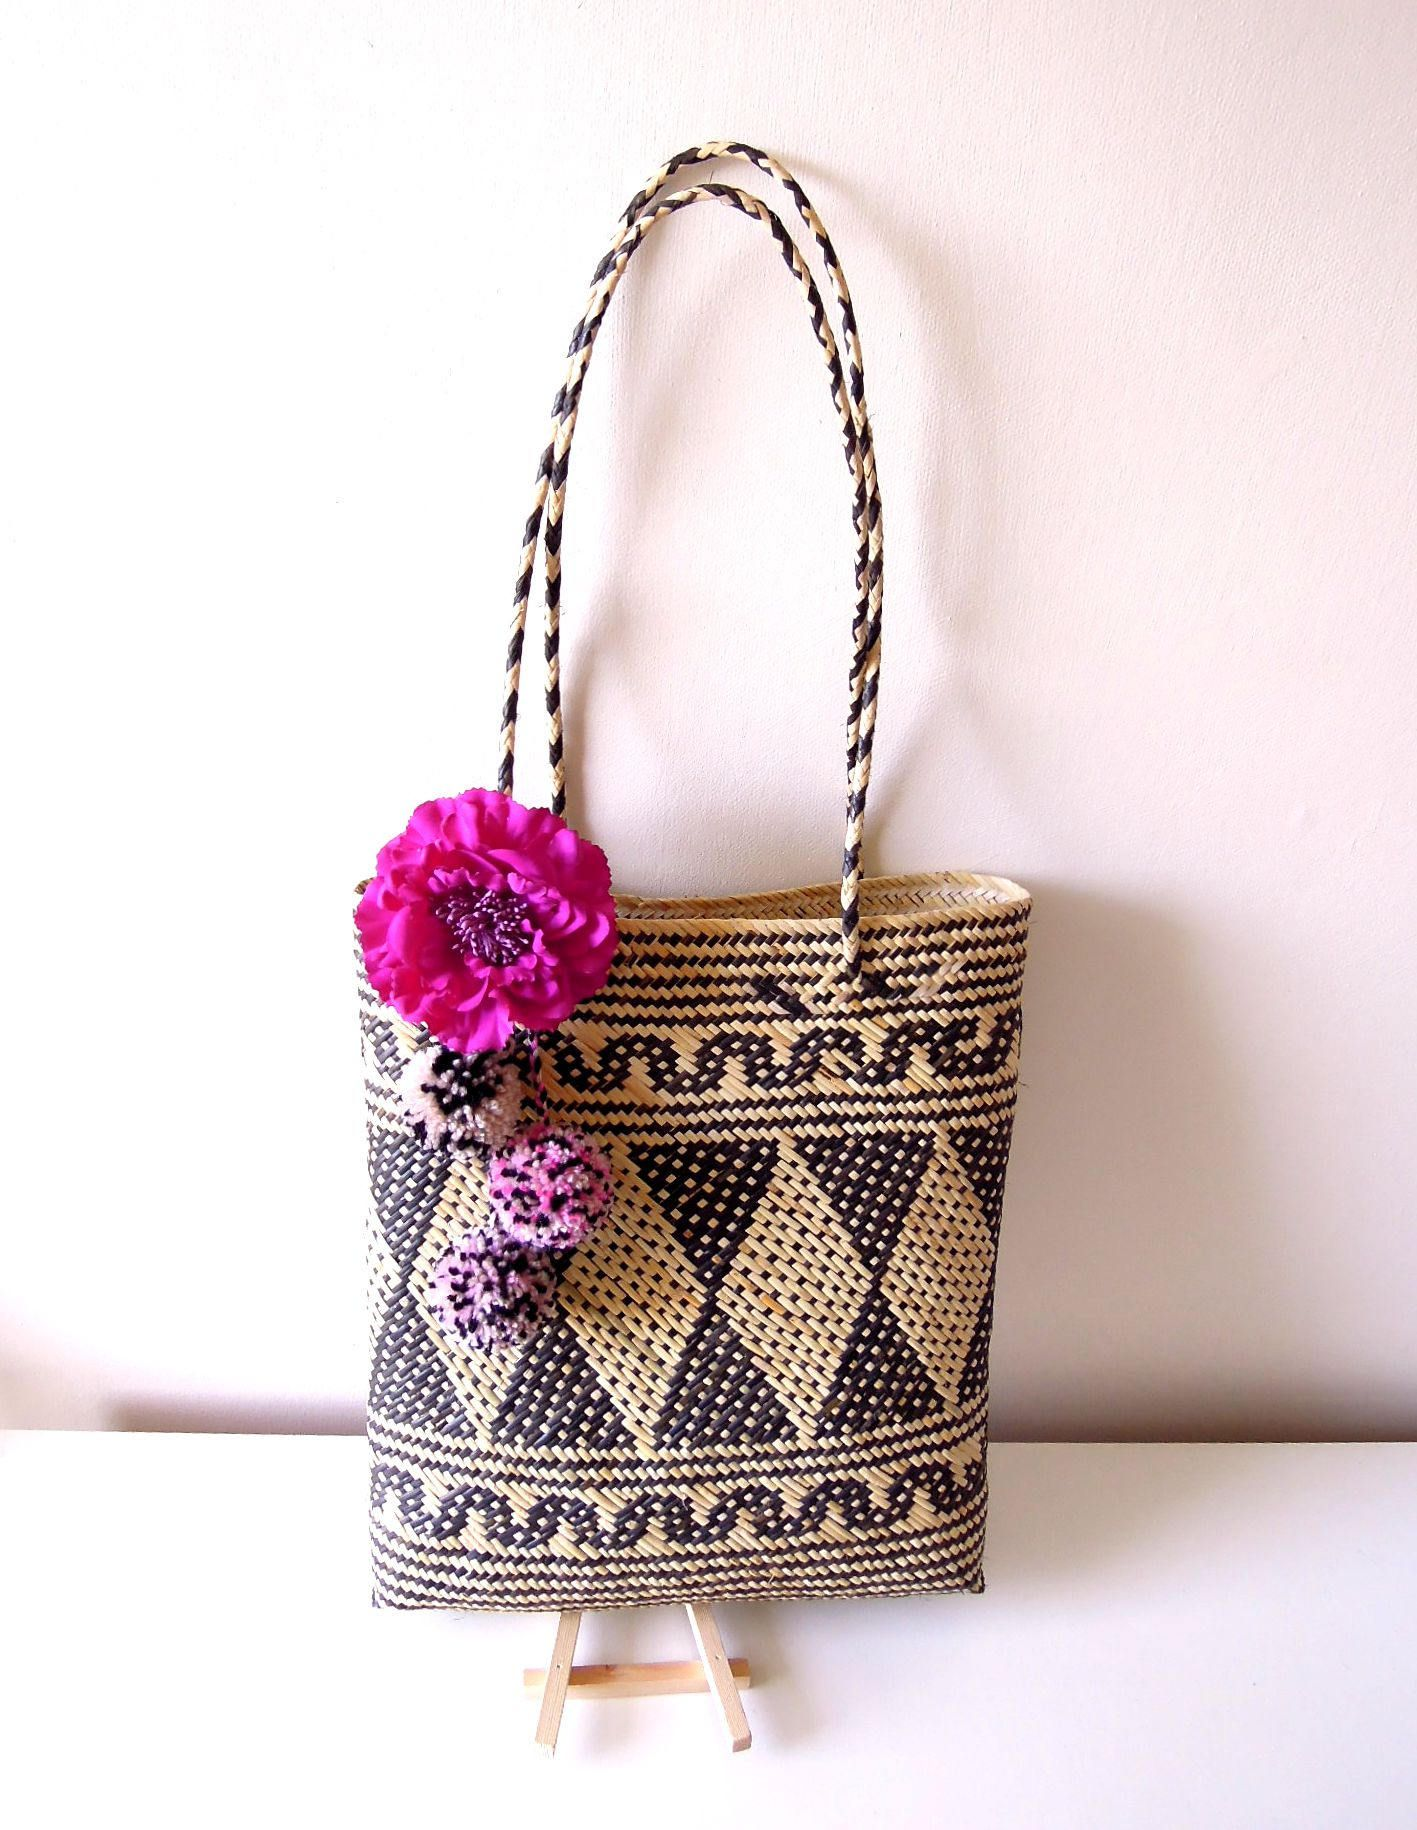 Boho summer bag – Borneo handwoven artisan bag - Tribal handbag ...